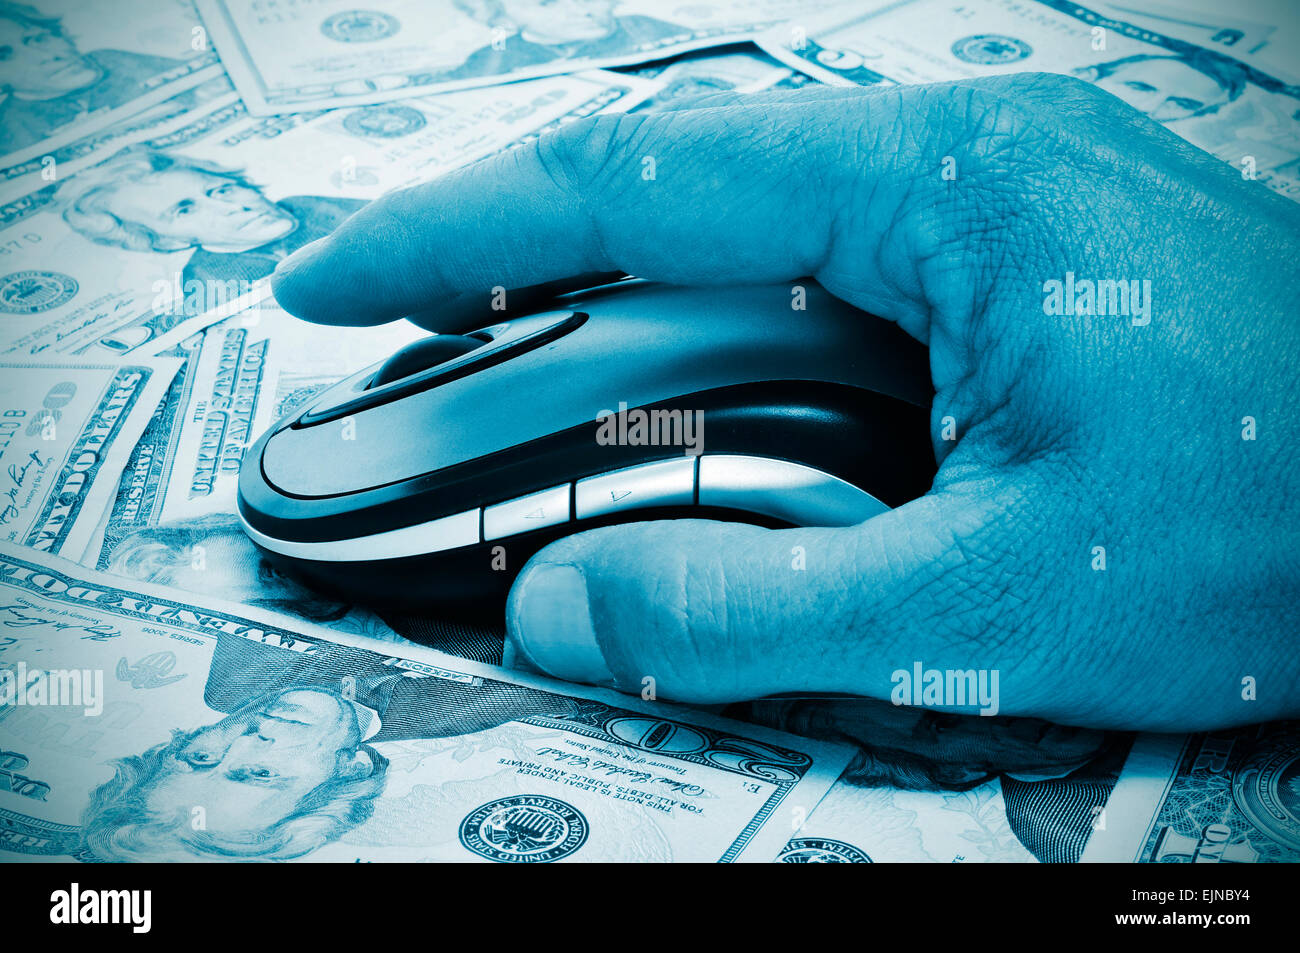 a hand man using a computer mouse on a background full of dollar banknotes, depicting the e-commerce concept or - Stock Image